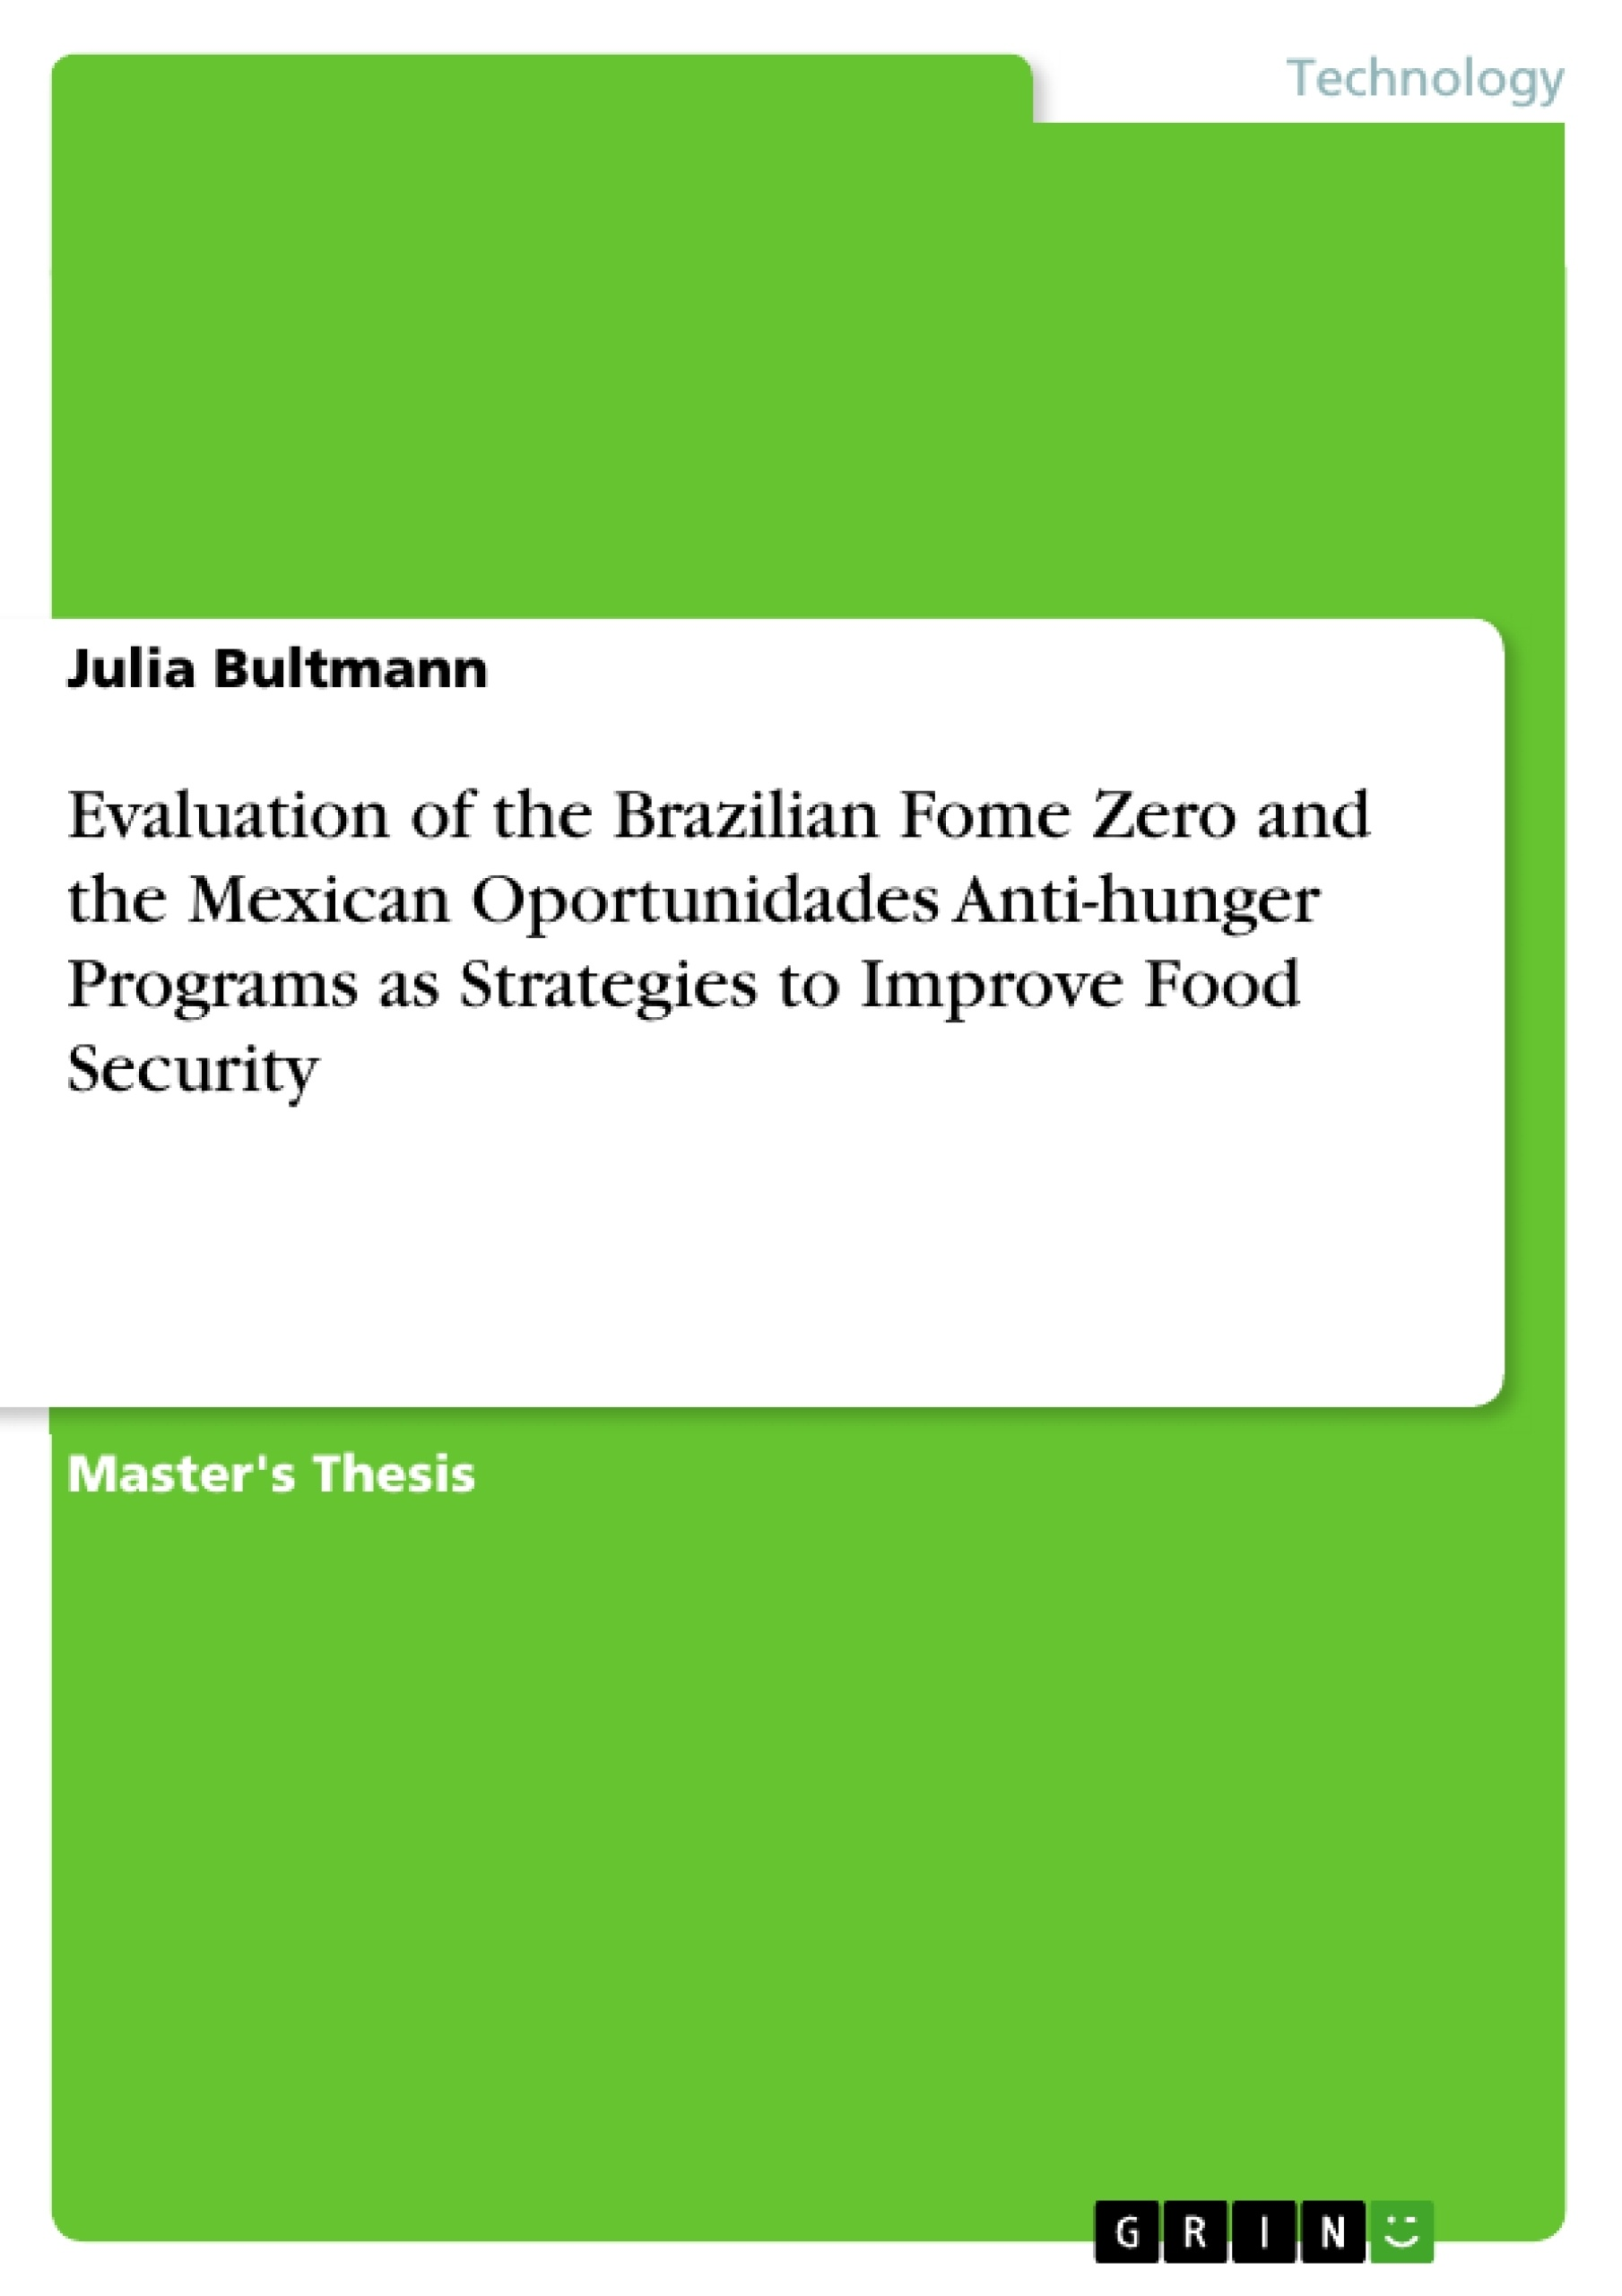 Title: Evaluation of the Brazilian Fome Zero and the Mexican Oportunidades Anti-hunger Programs as Strategies to Improve Food Security